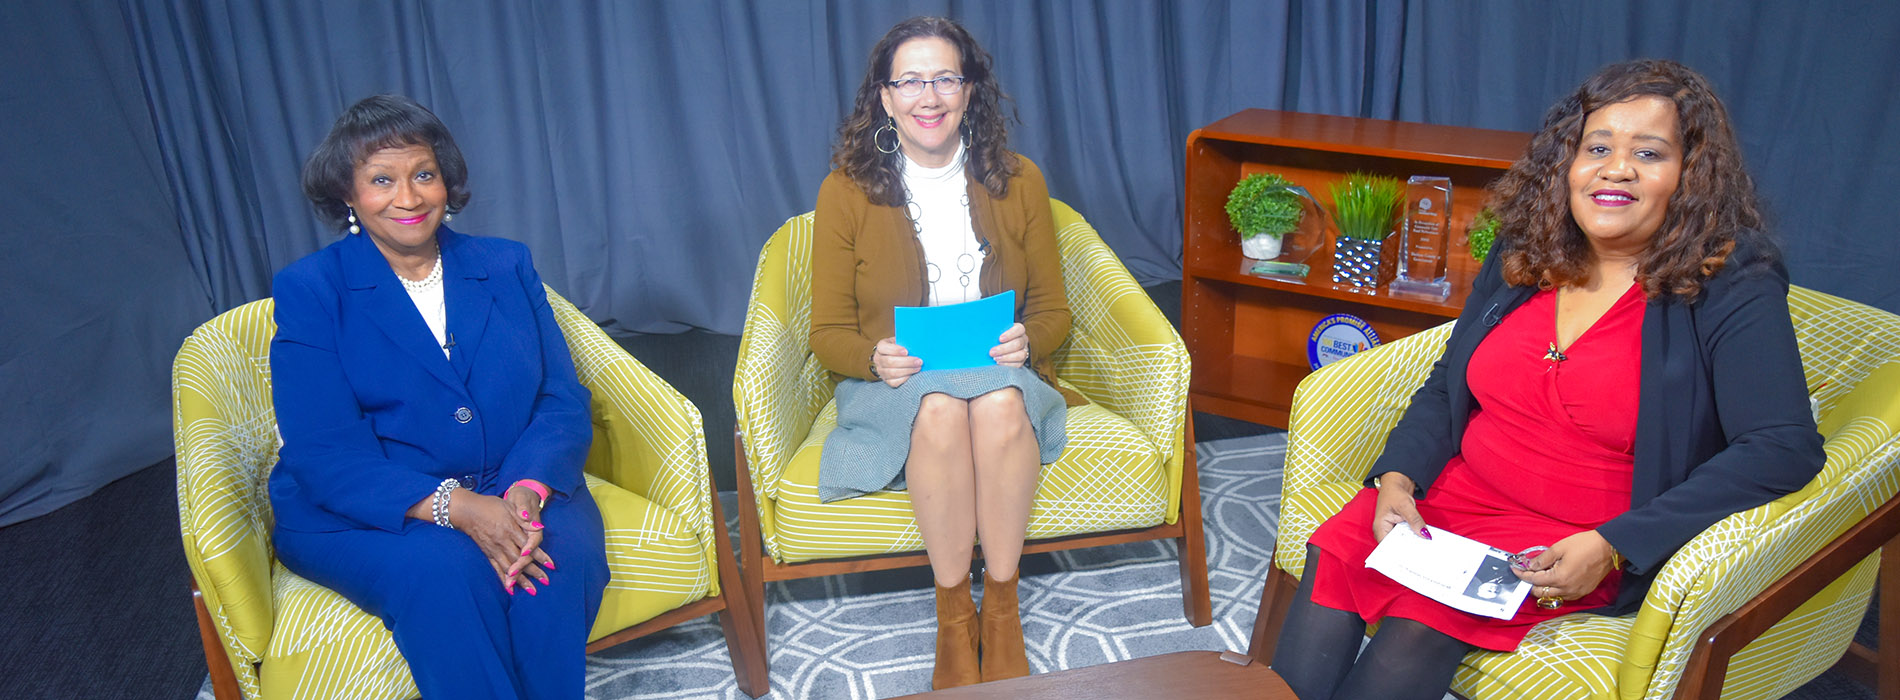 March 2019 In Touch with Durham County TV show promo